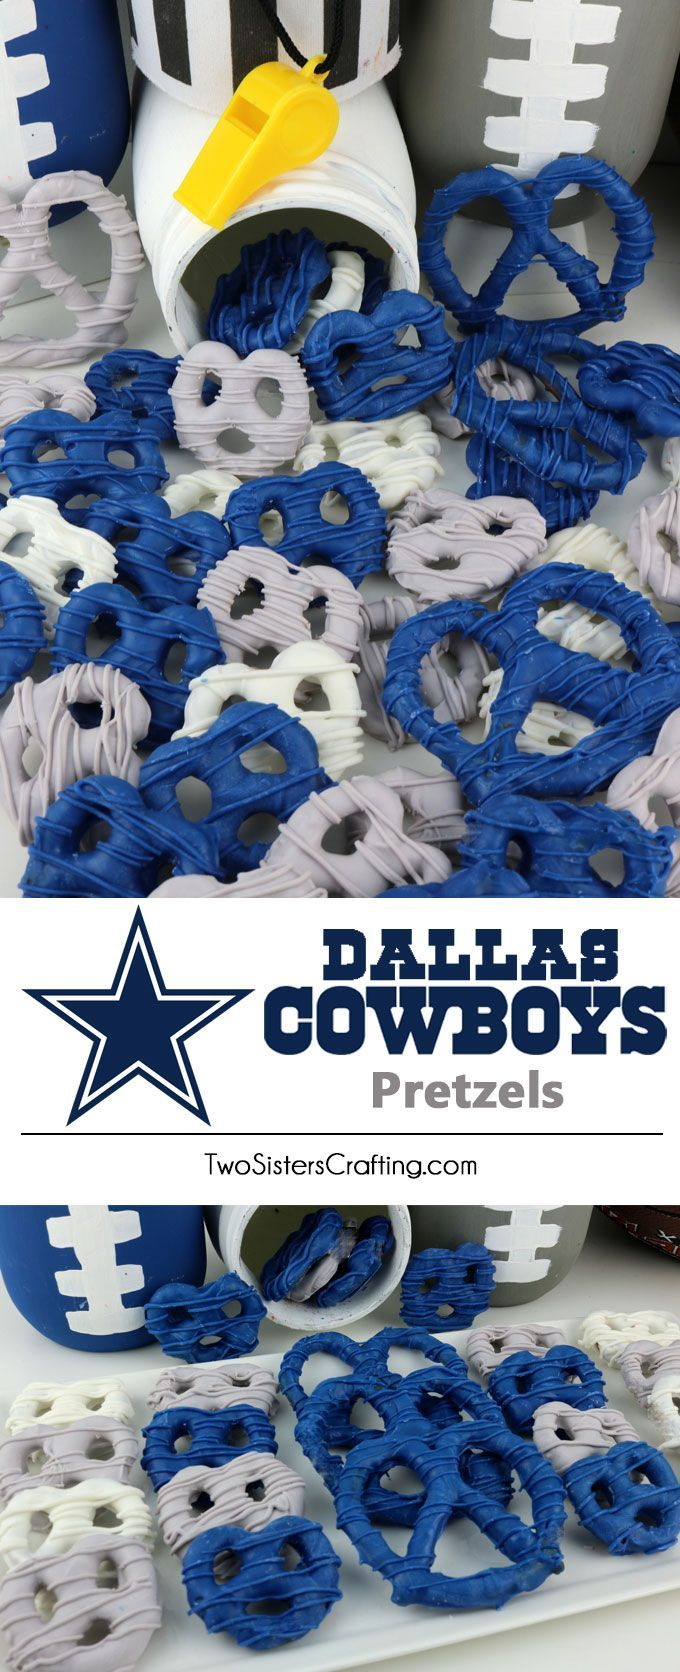 Dallas Cowboys Pretzels - yummy bites of sweet and salty Football Game Day goodness that are super easy to make. They are perfect as a little extra treat at a NFL playoff party, a Super Bowl party or as a special dessert for the Dallas Cowboys fan in your life. Follow us for more fun Super Bowl Food Ideas.